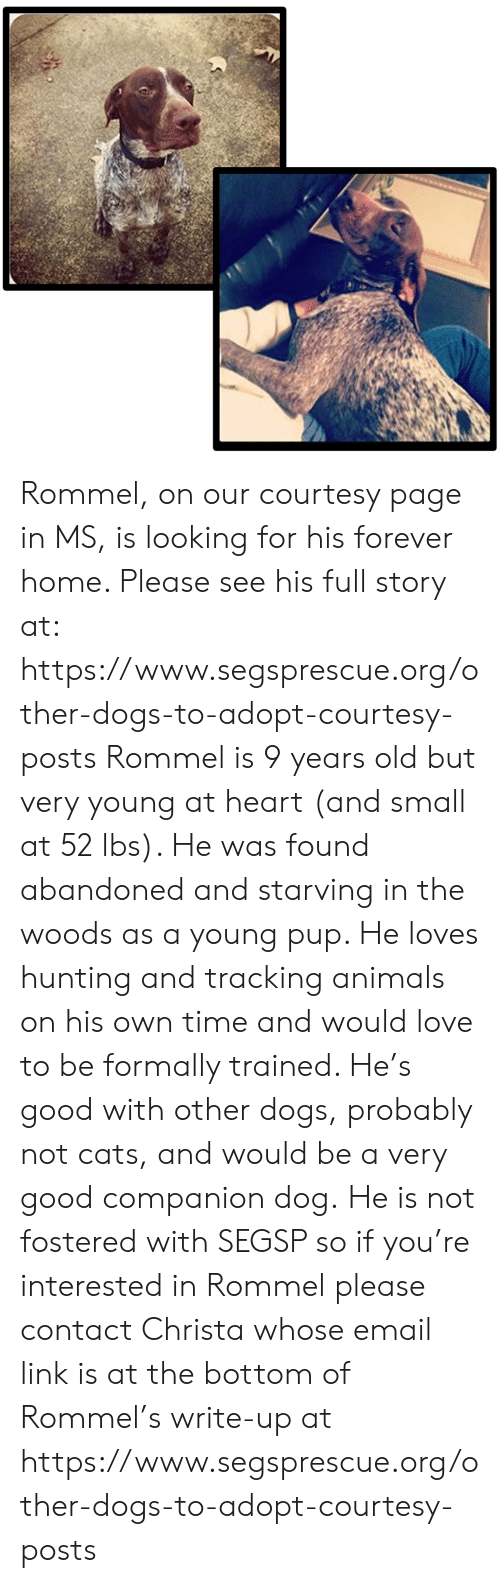 Animals, Cats, and Dogs: Rommel, on our courtesy page in MS, is looking for his forever home.  Please see his full story at:  https://www.segsprescue.org/other-dogs-to-adopt-courtesy-posts   Rommel is 9 years old but very young at heart (and small at 52 lbs).  He was found abandoned and starving in the woods as a young pup. He loves hunting and tracking animals on his own time and would love to be formally trained. He's good with other dogs, probably not cats, and would be a very good companion dog.  He is not fostered with SEGSP so if you're interested in Rommel please contact Christa whose email link is at the bottom of Rommel's write-up at https://www.segsprescue.org/other-dogs-to-adopt-courtesy-posts